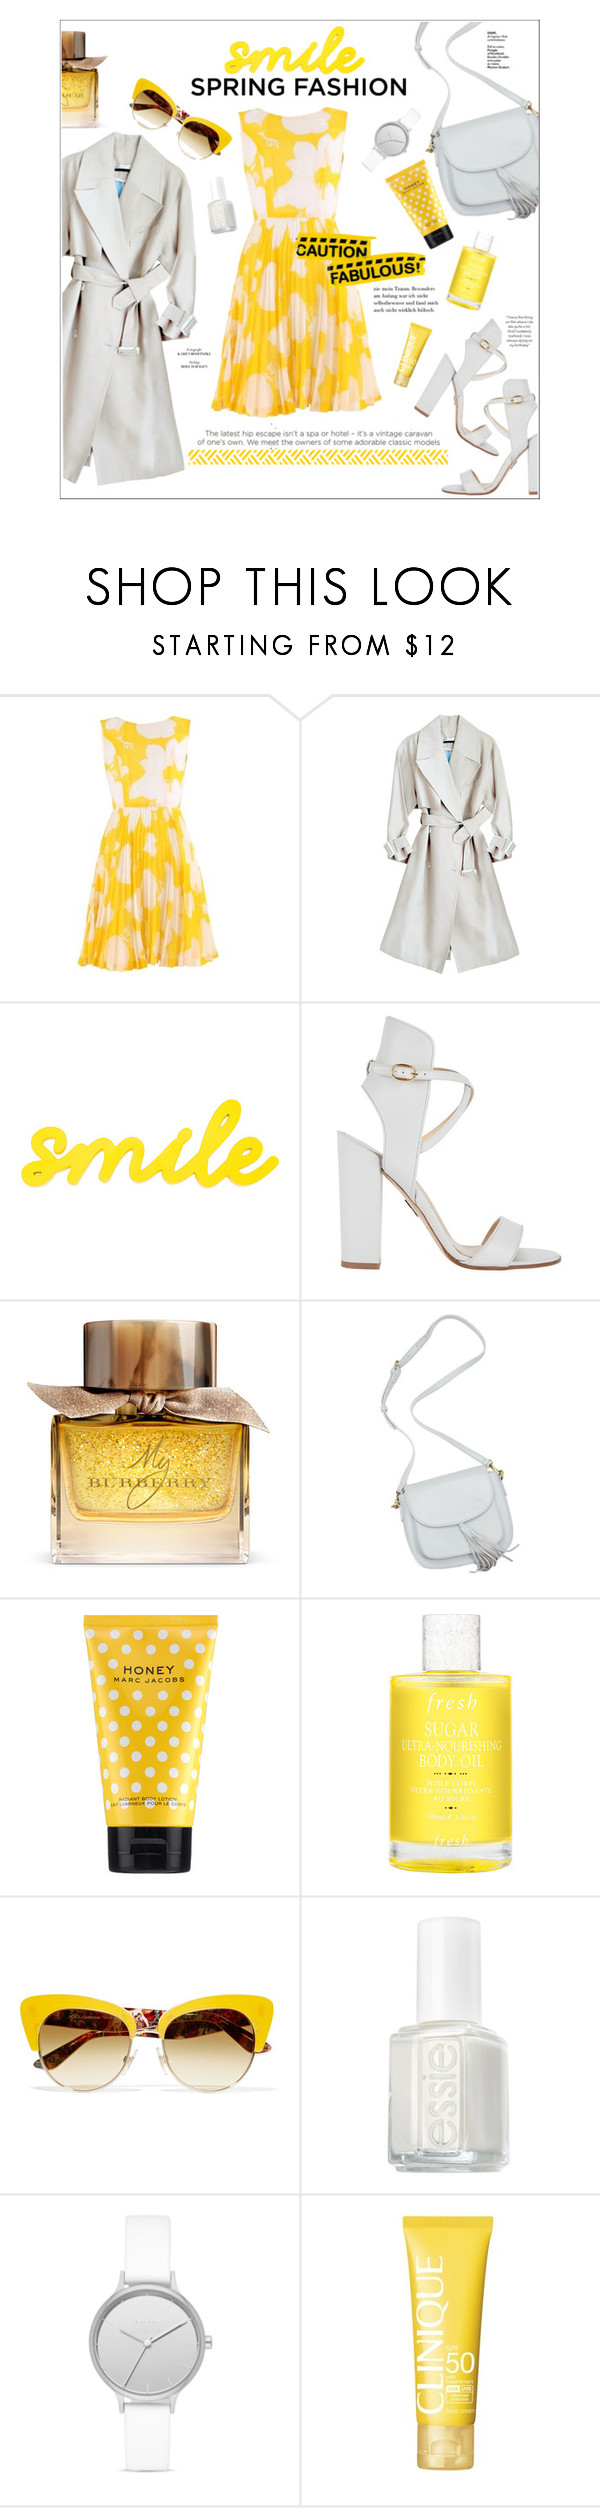 """""""spring fashion: dresses"""" by fernweeh ❤ liked on Polyvore featuring Paul Andrew, Burberry, Marc Jacobs, Fresh, Dolce&Gabbana, Essie, Skagen and Clinique"""